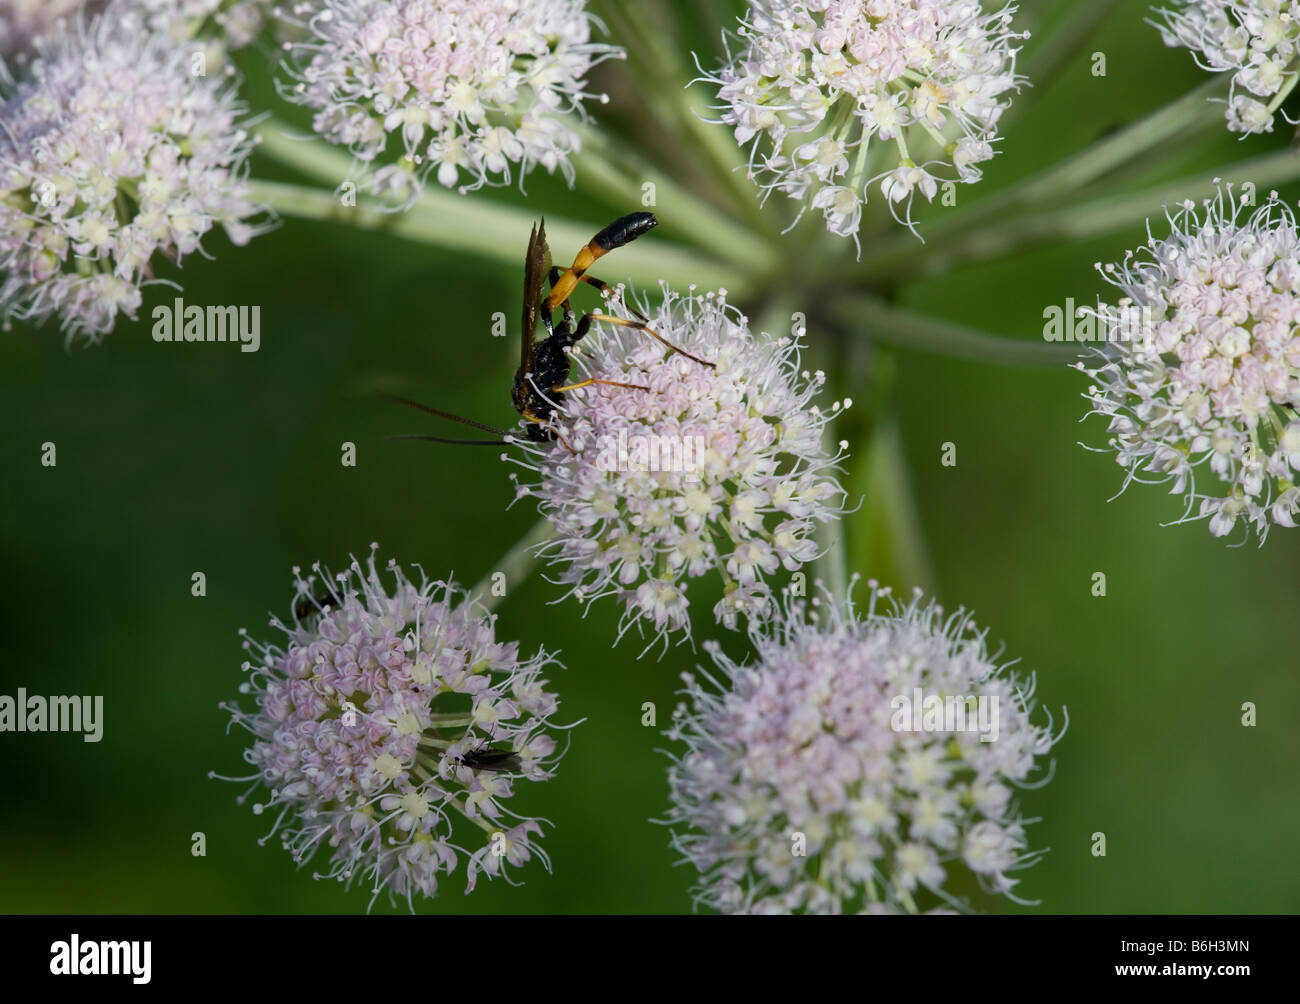 Hymenoptera on Angelica sylvestris Stock Photo